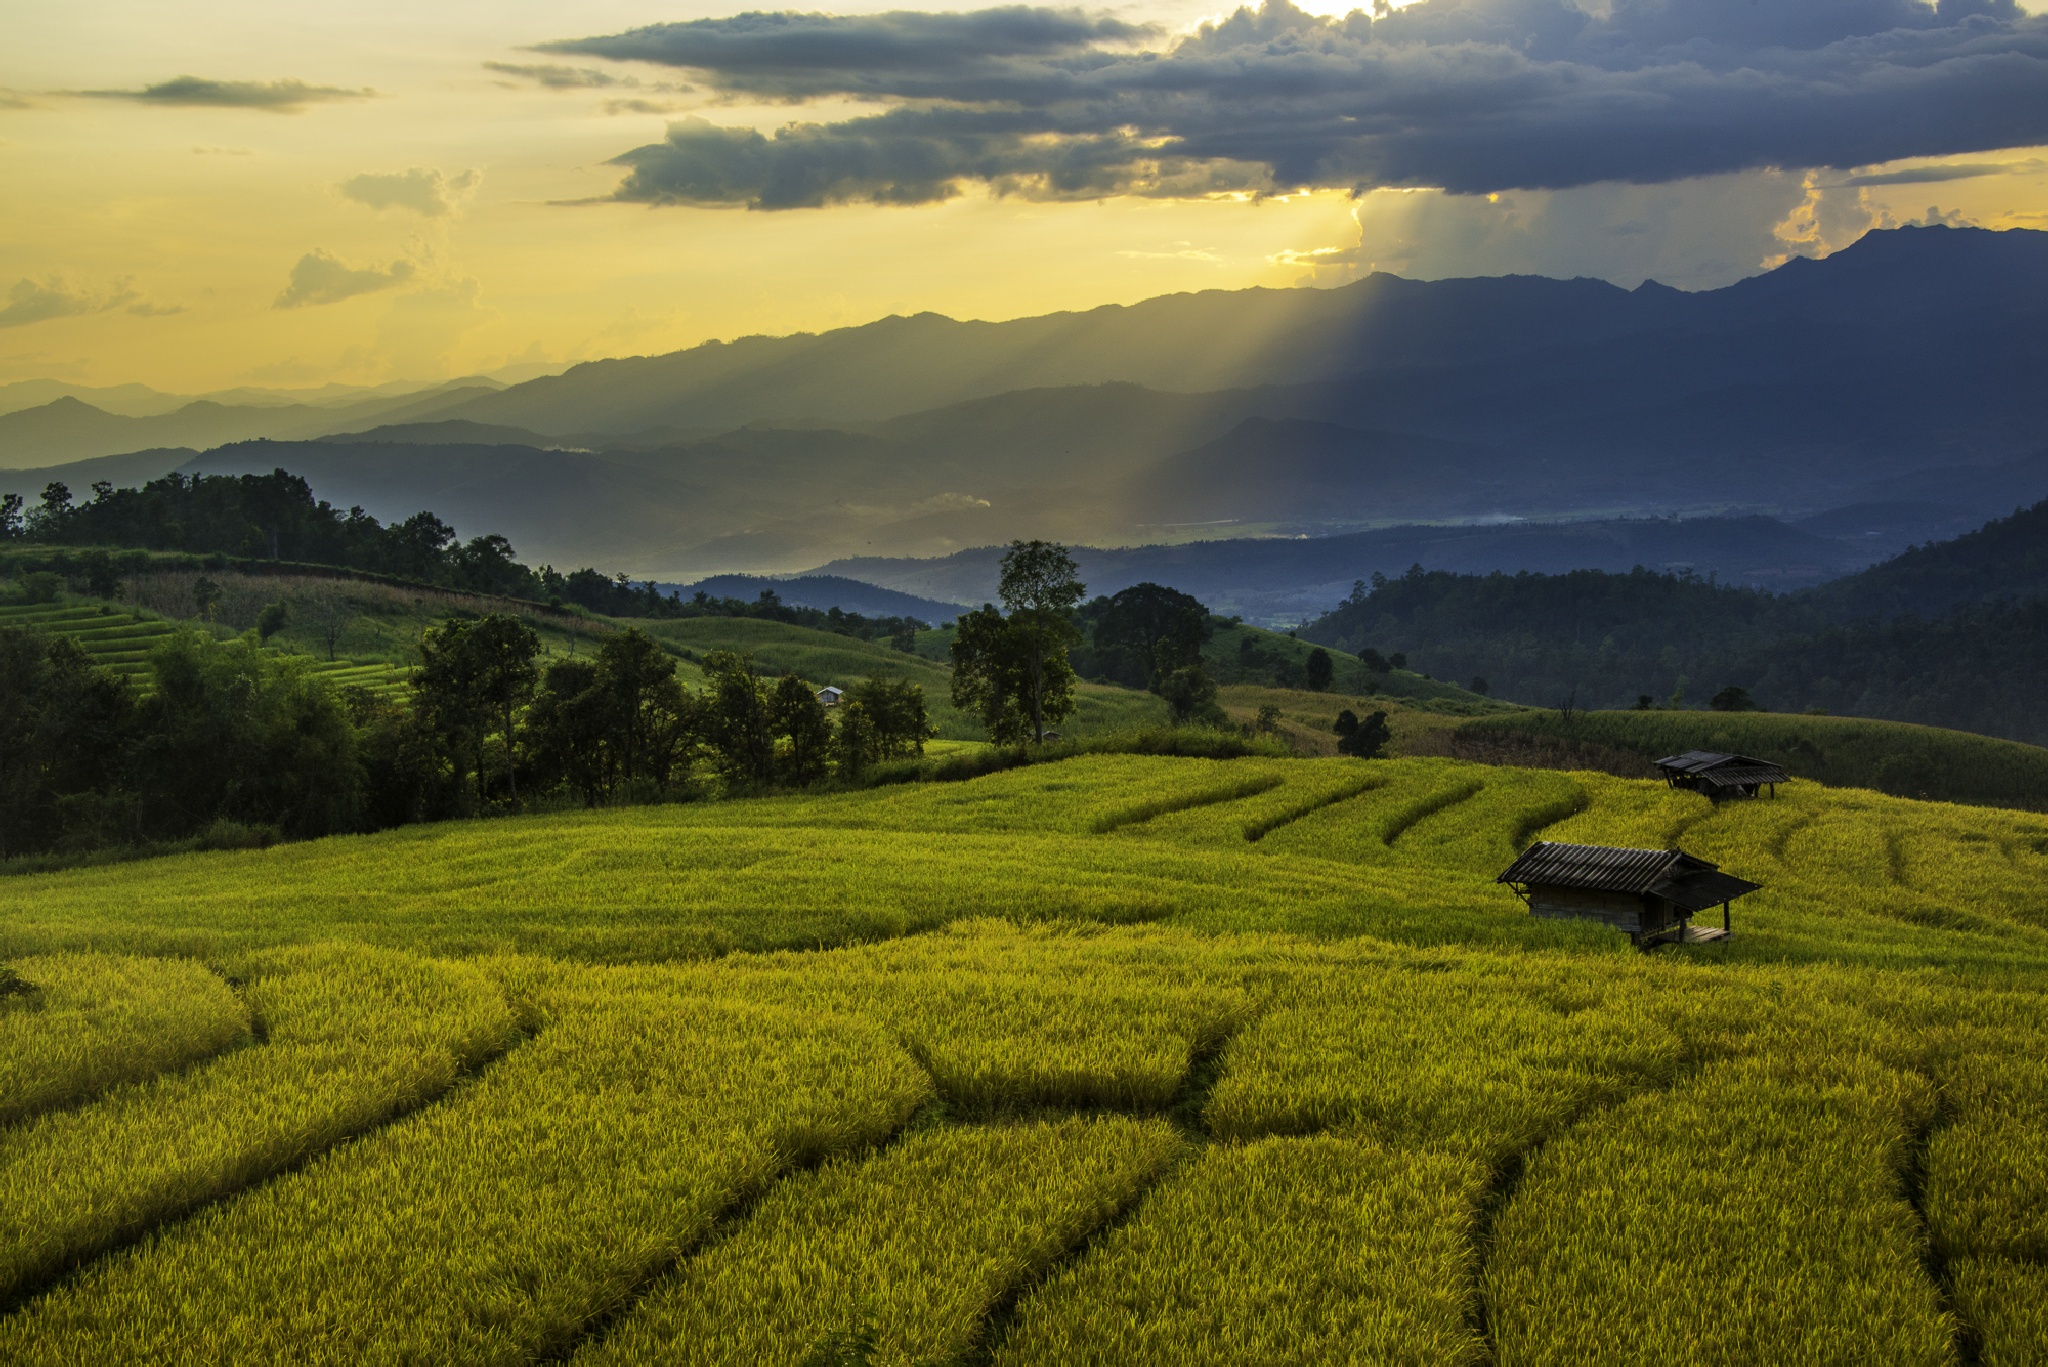 Rice fields at sunset by Danny Alexander